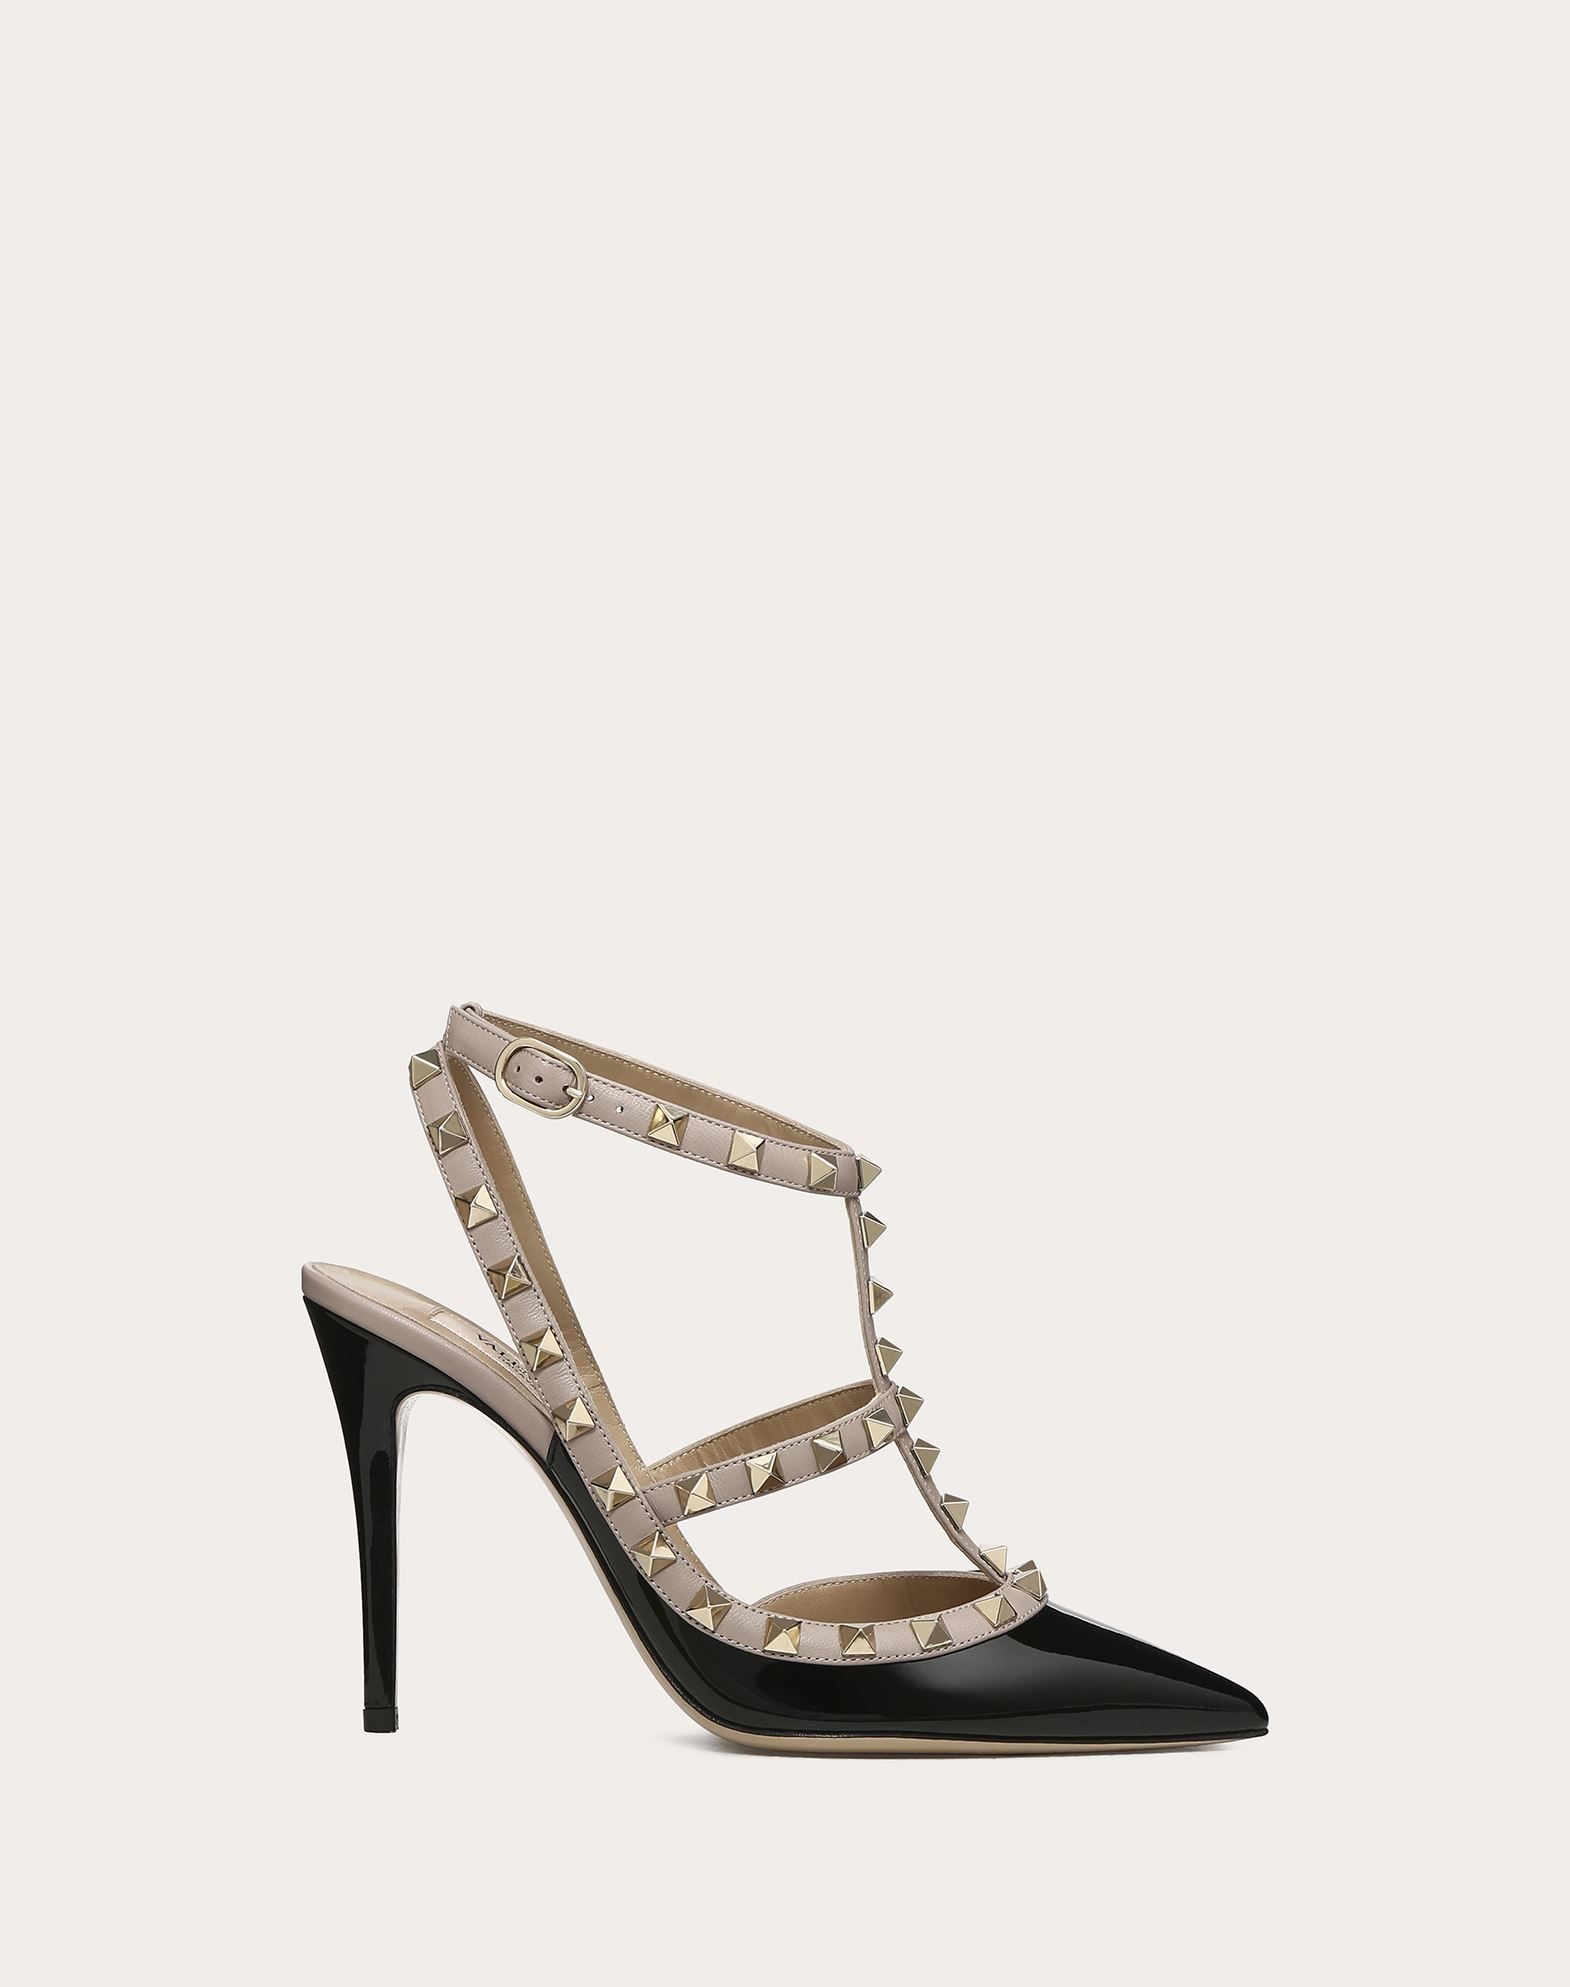 shoes for the get less look stud vidamasfacil rock la valentino